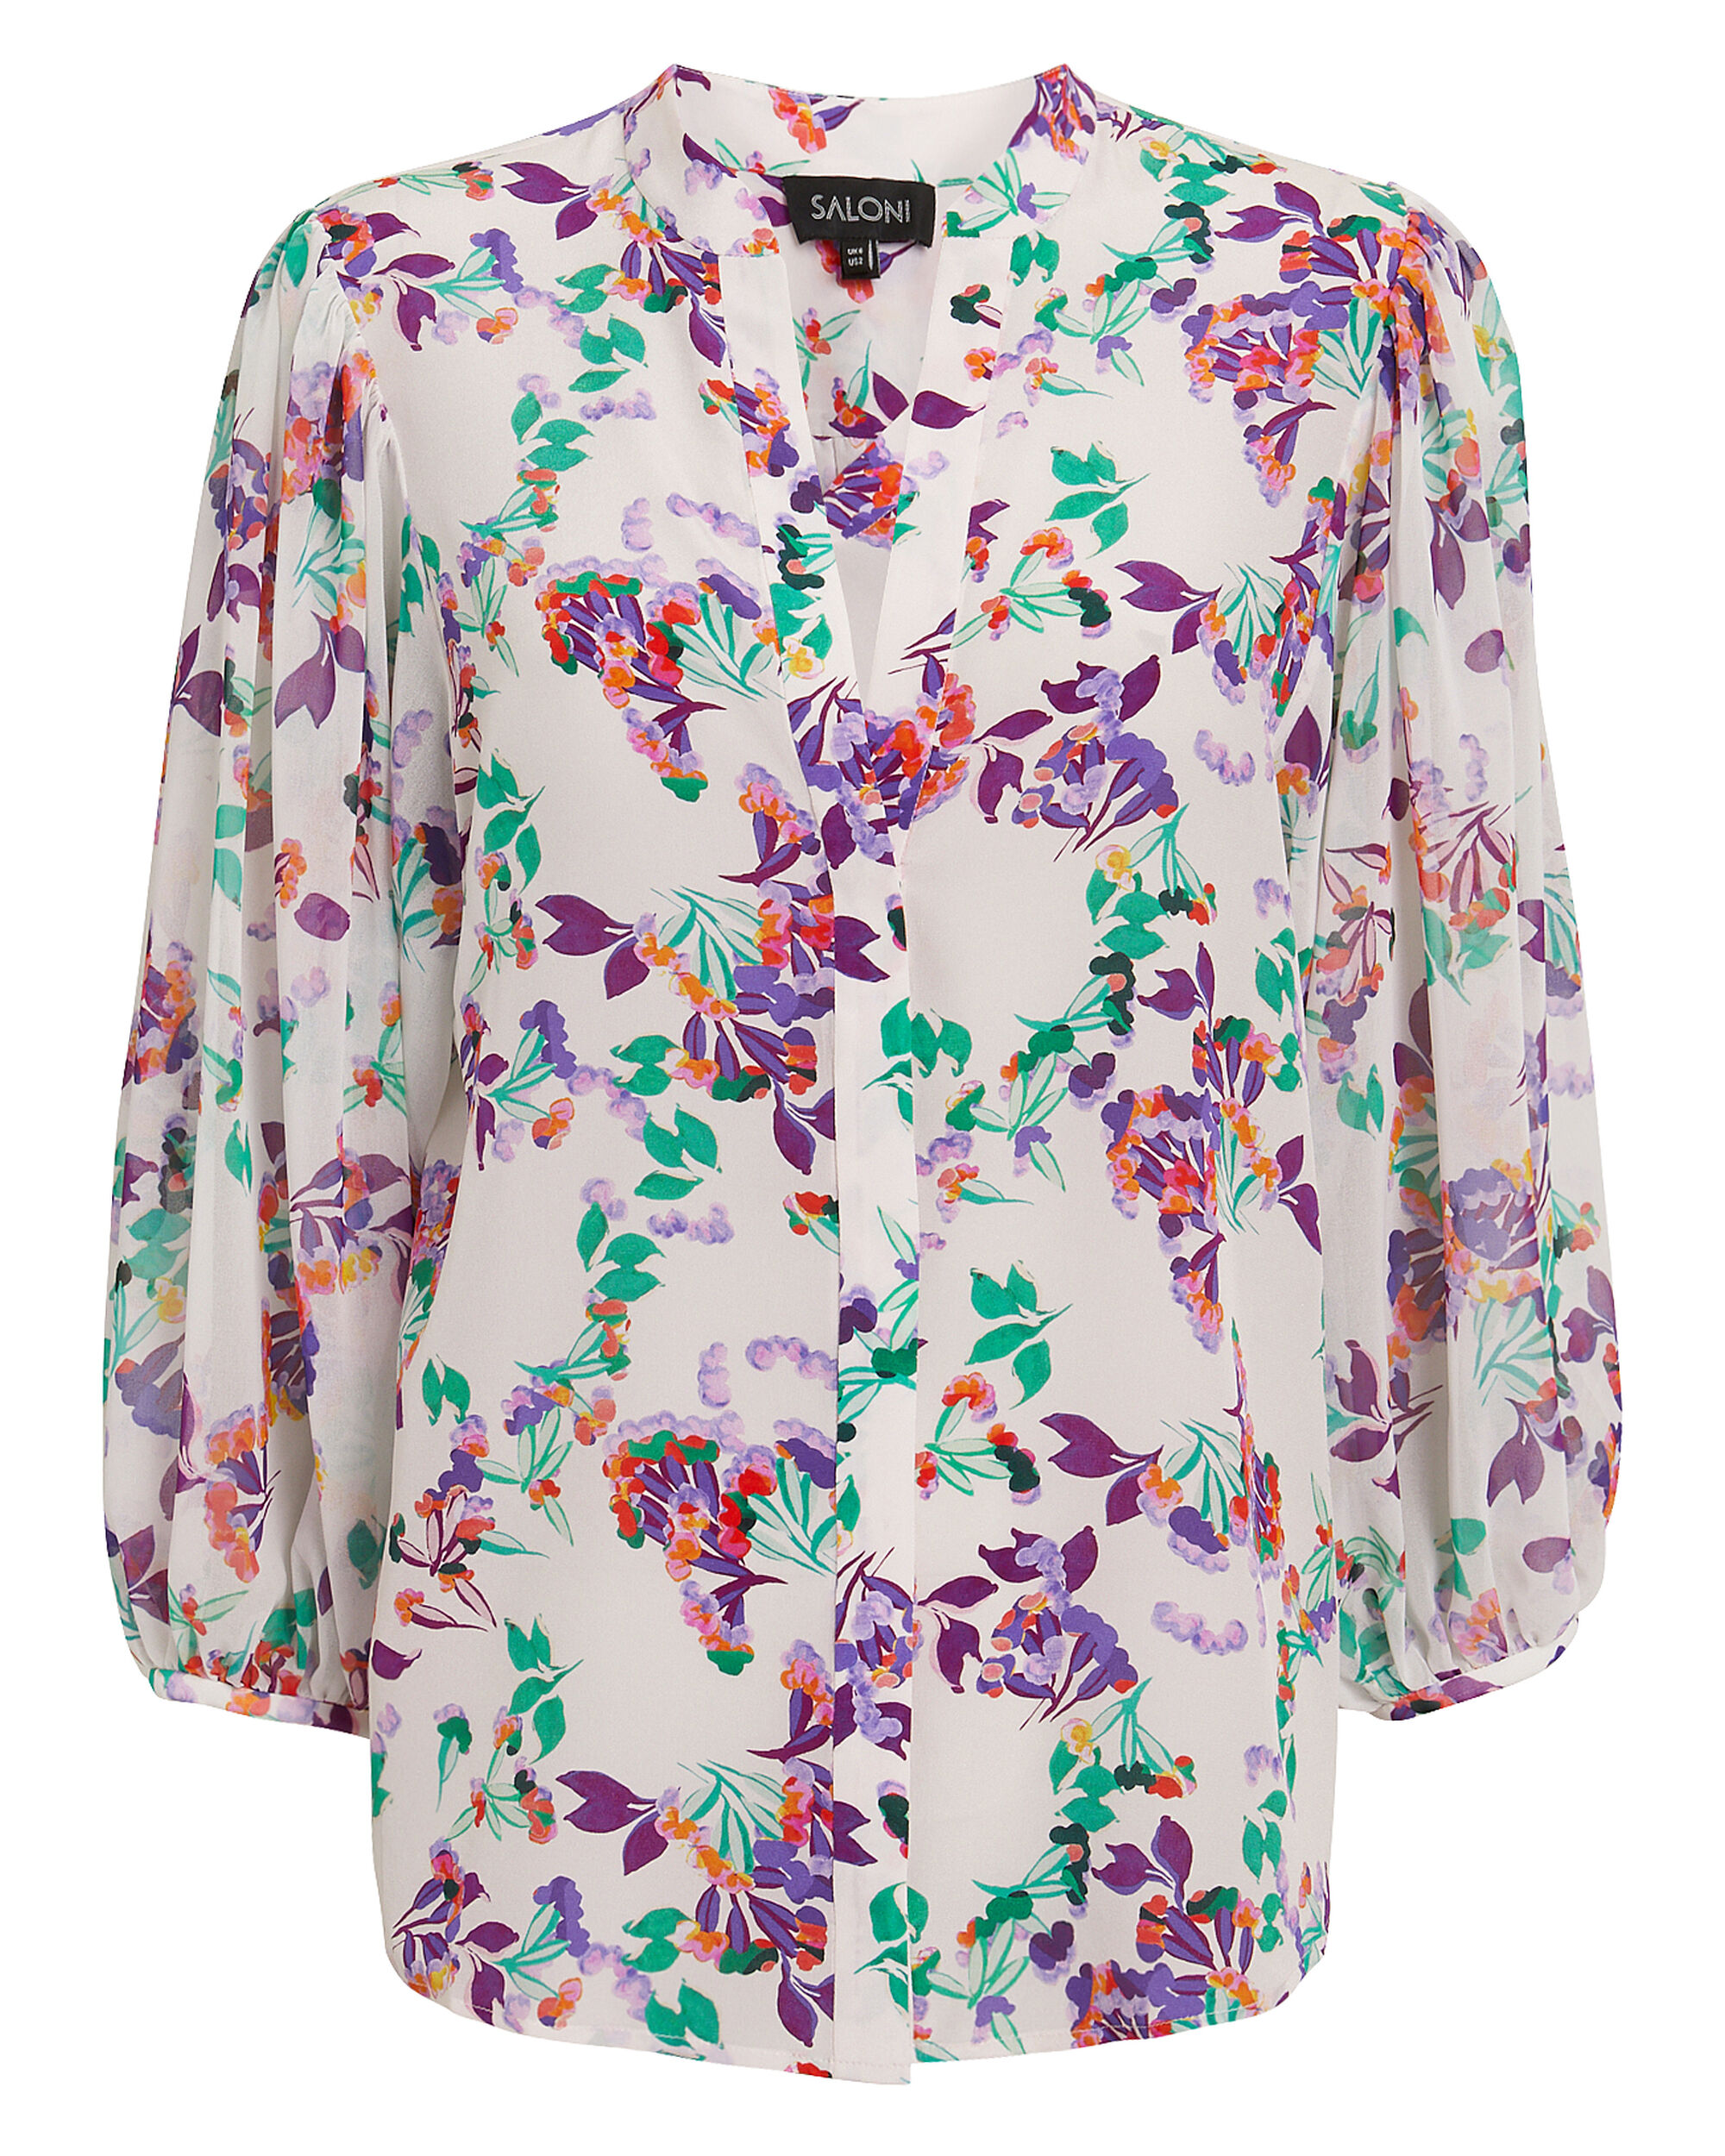 Chloe Silk Floral Blouse, MULTI, hi-res